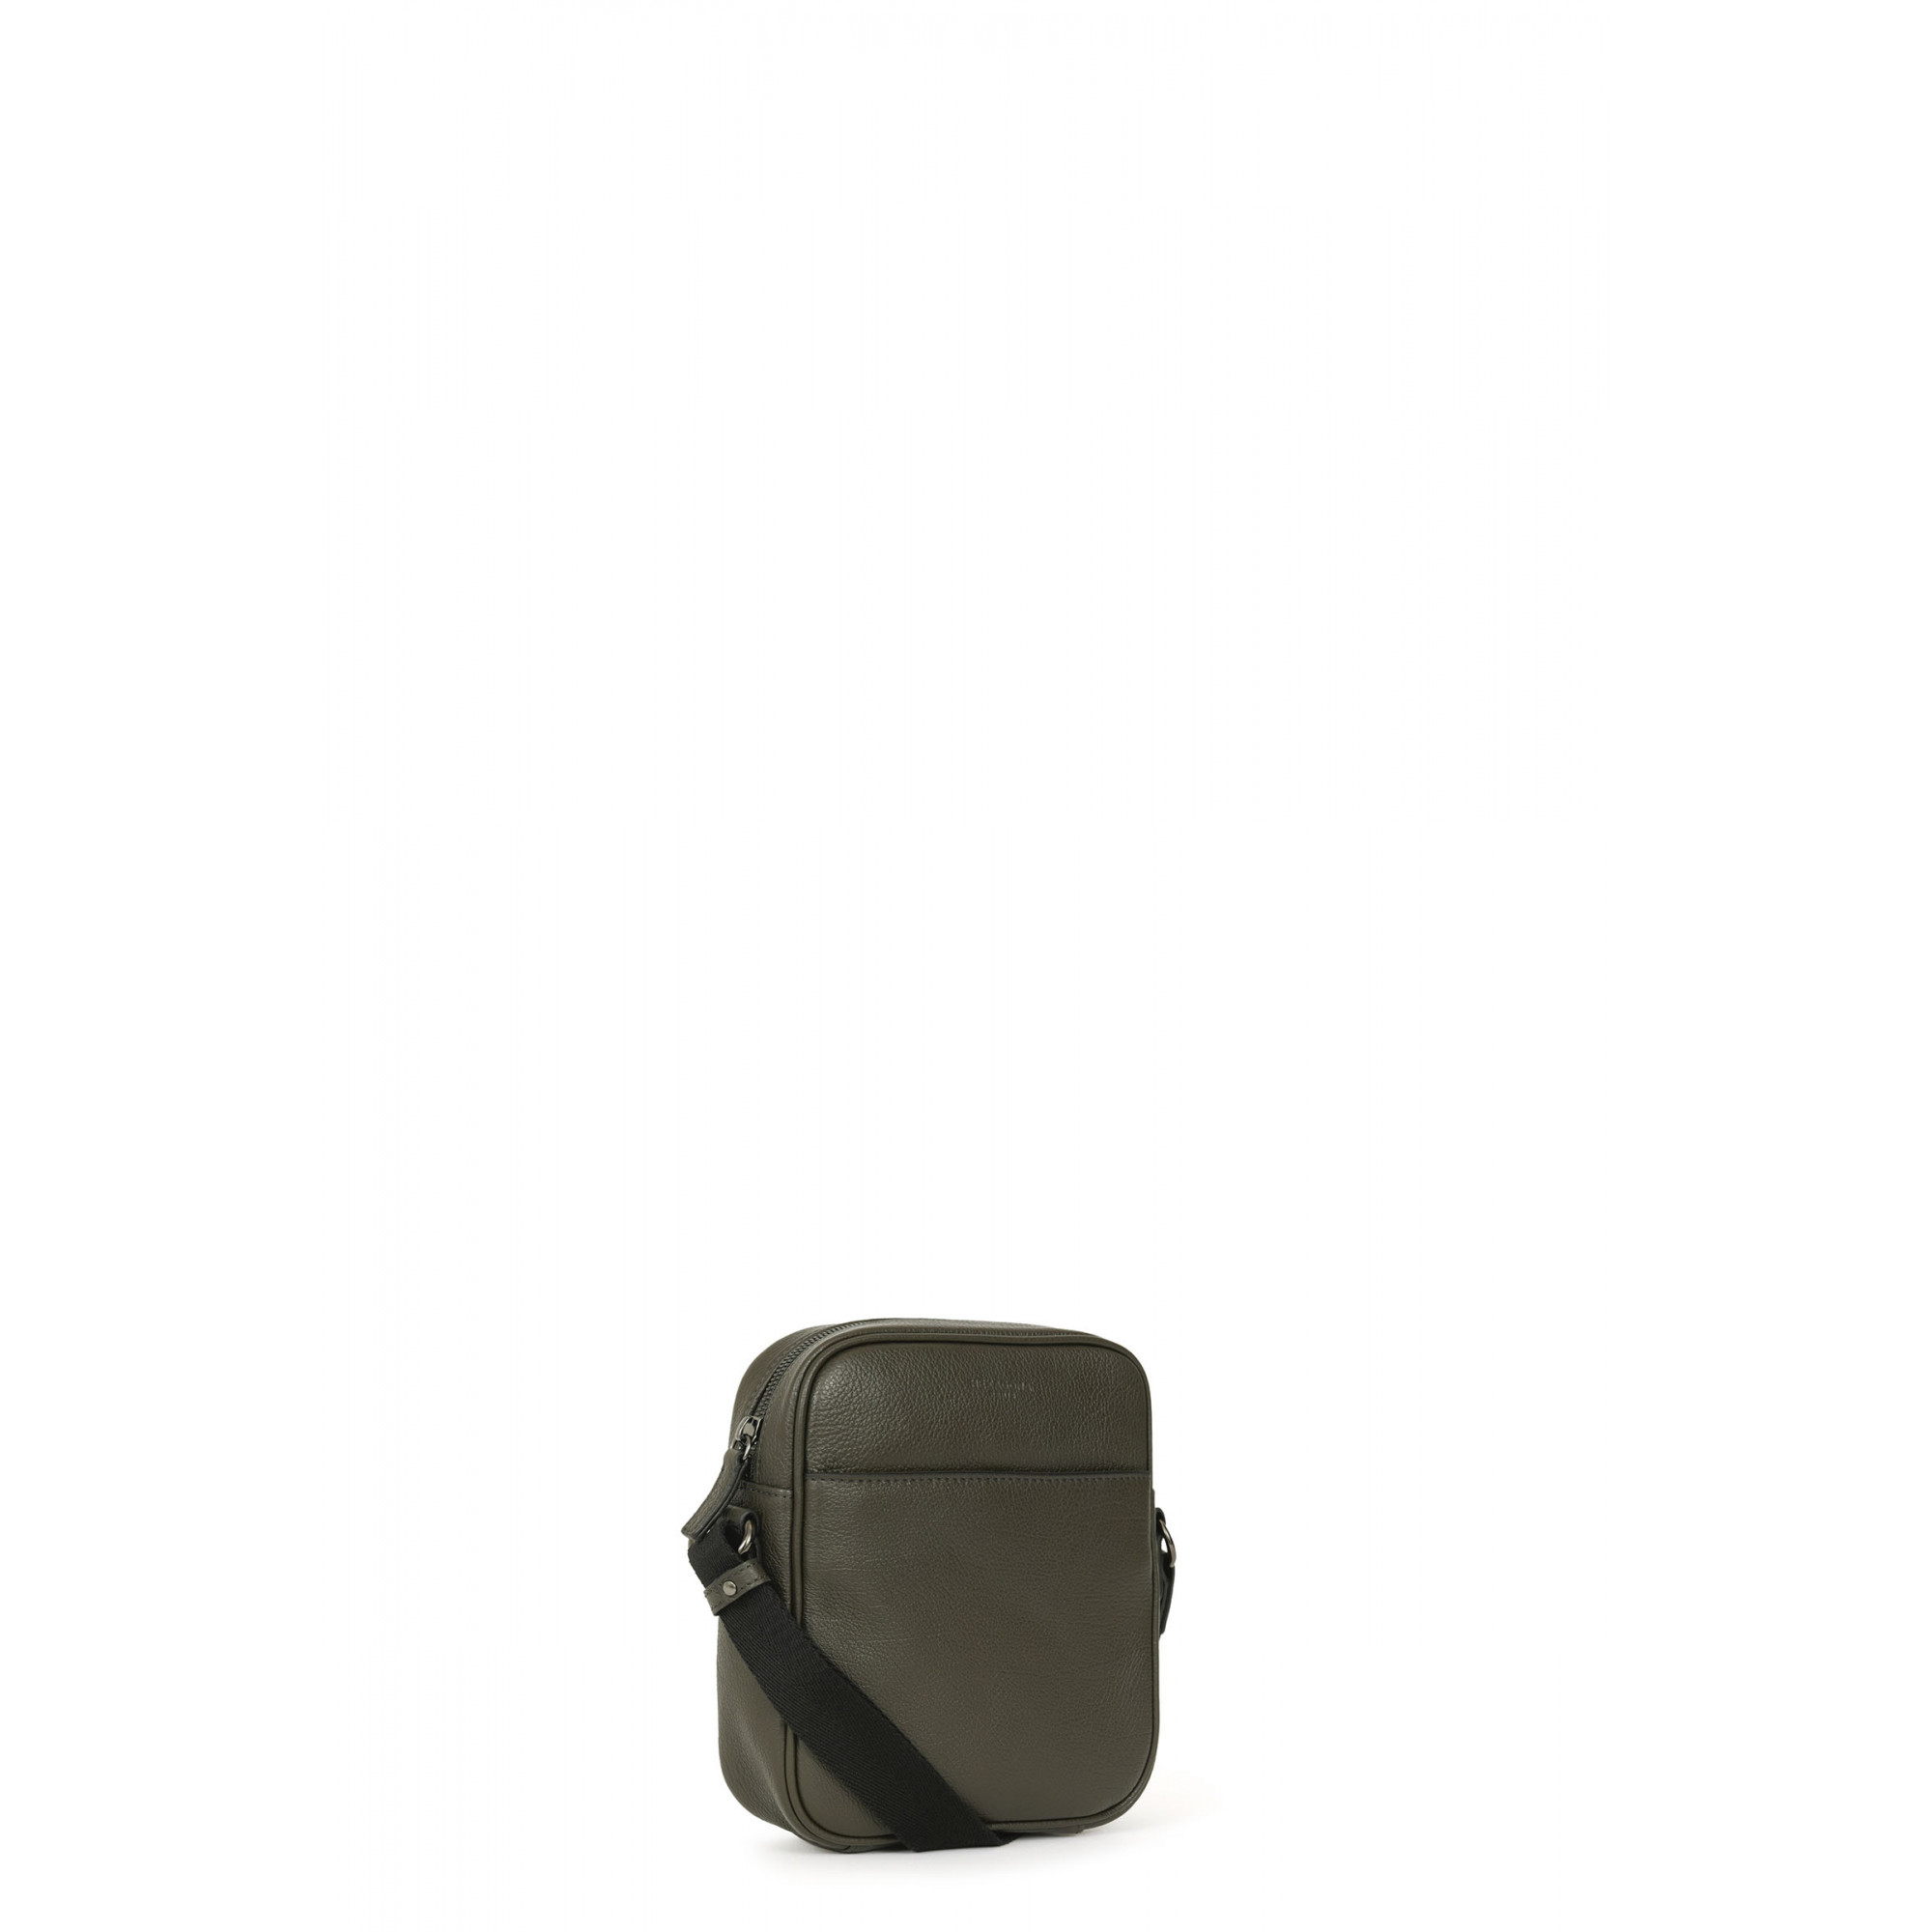 Leather small crossbody bag